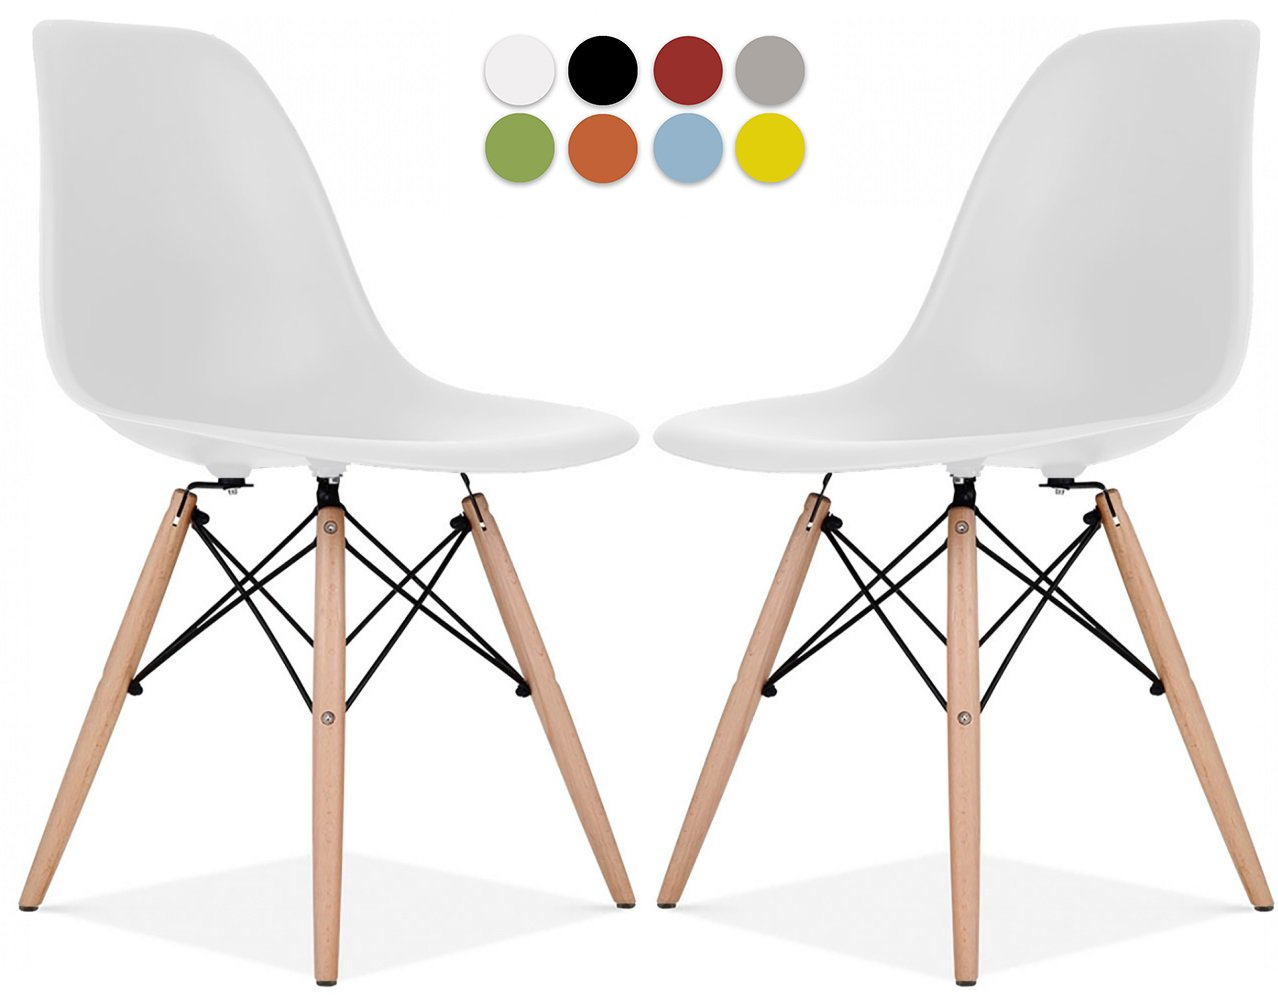 La Valley Eames Style Chair by Set Of 2 - Mid Century Modern Eames Molded Shell Chair with Dowel Wood Eiffel Legs - for Dining Room, Kitchen, Bedroom, Lounge - Easy-Assemble & Clean - White